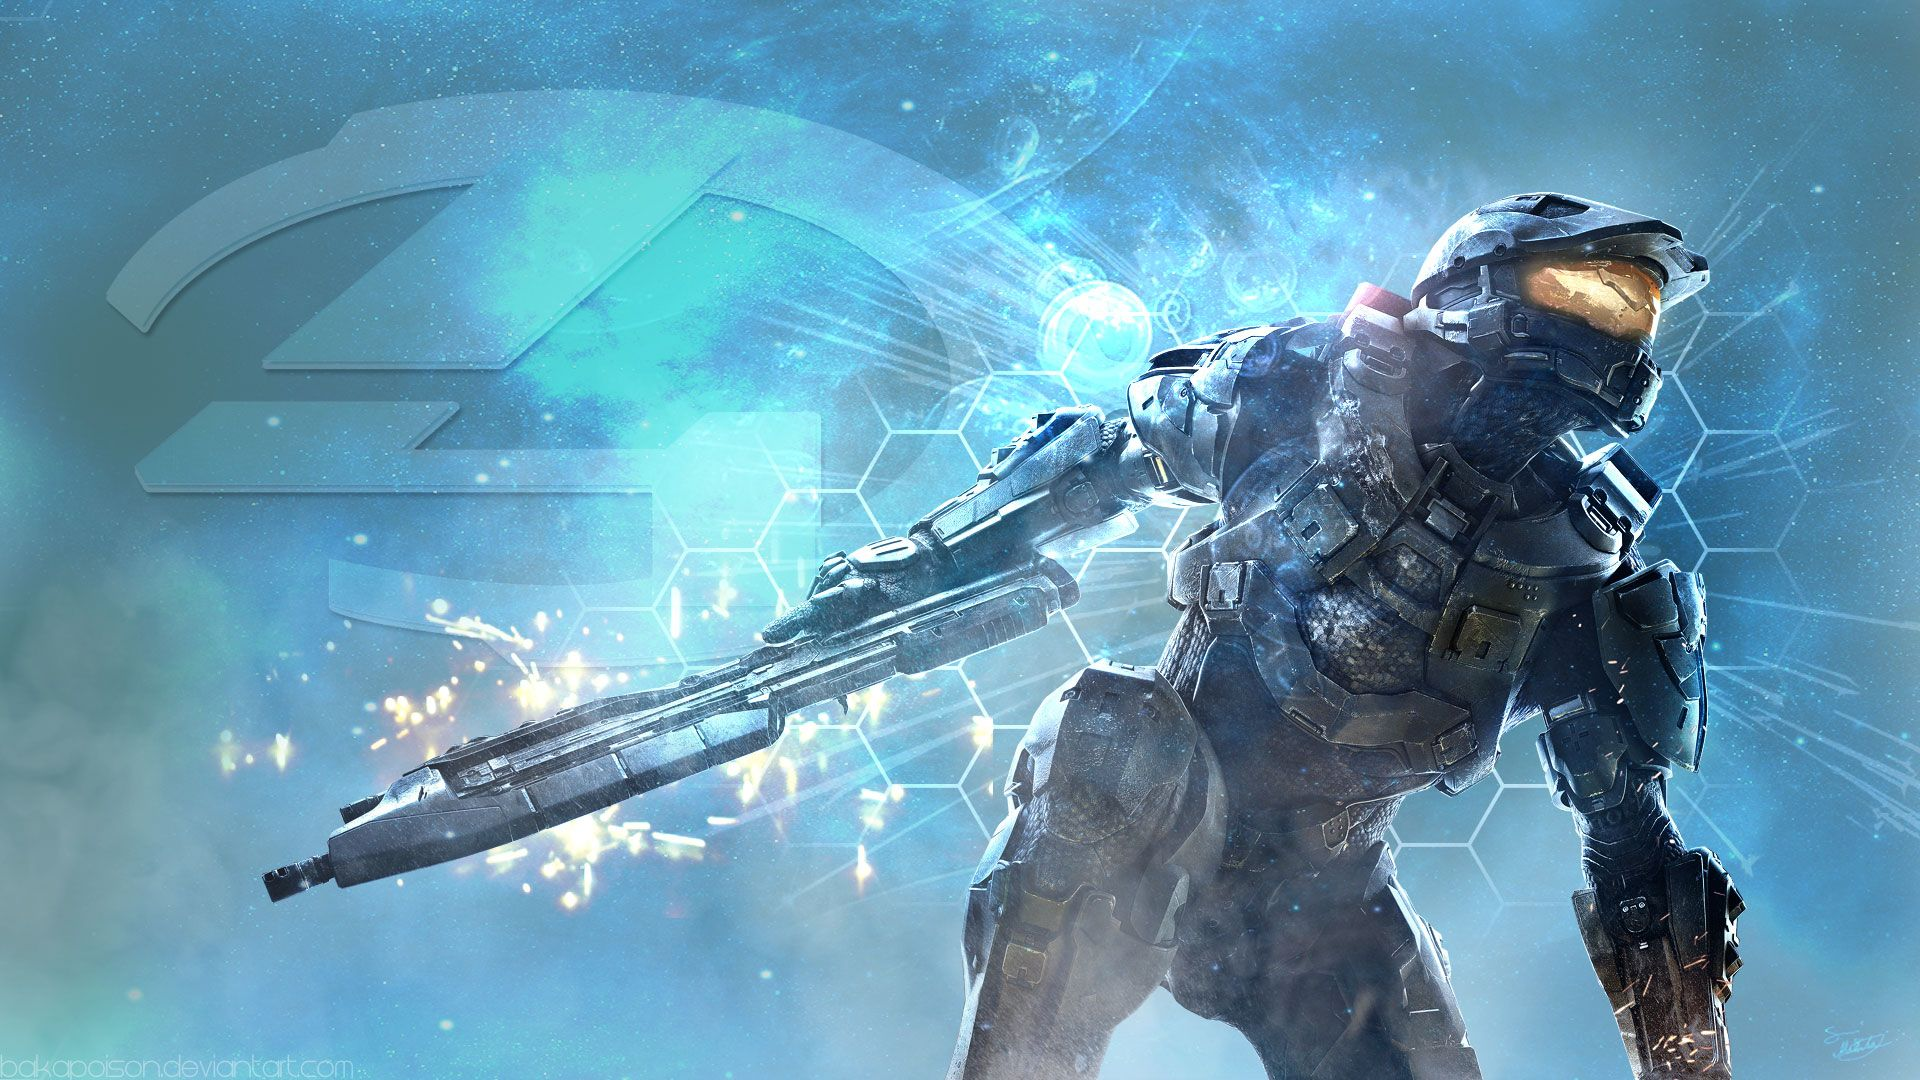 Cool Halo Wallpaper 1600x900 4 48 Wallpapers